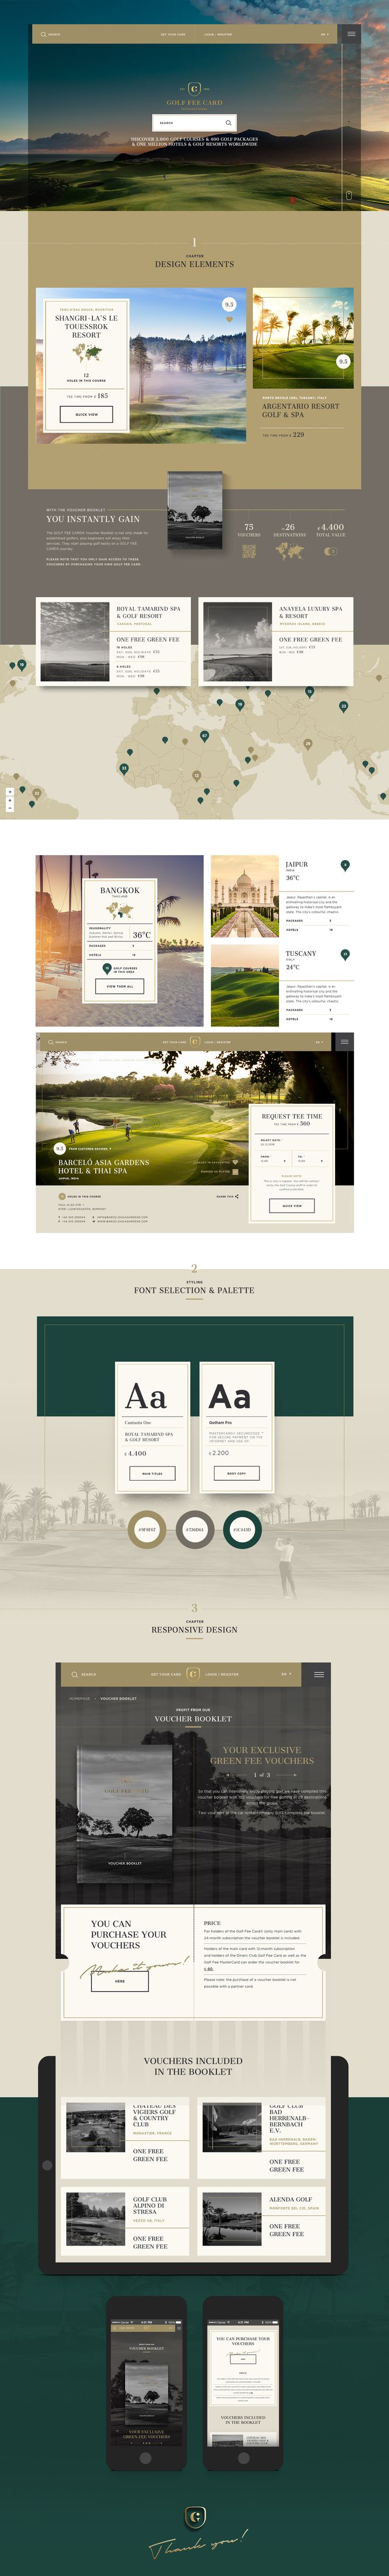 "The all-new ""Golf Fee Card International"" website, is a complete platform of services and products that refer to all golf enthusiasts.Through this website, all golfers can purchase the Golf Fee Card International, a unique privileges card. The website o…"